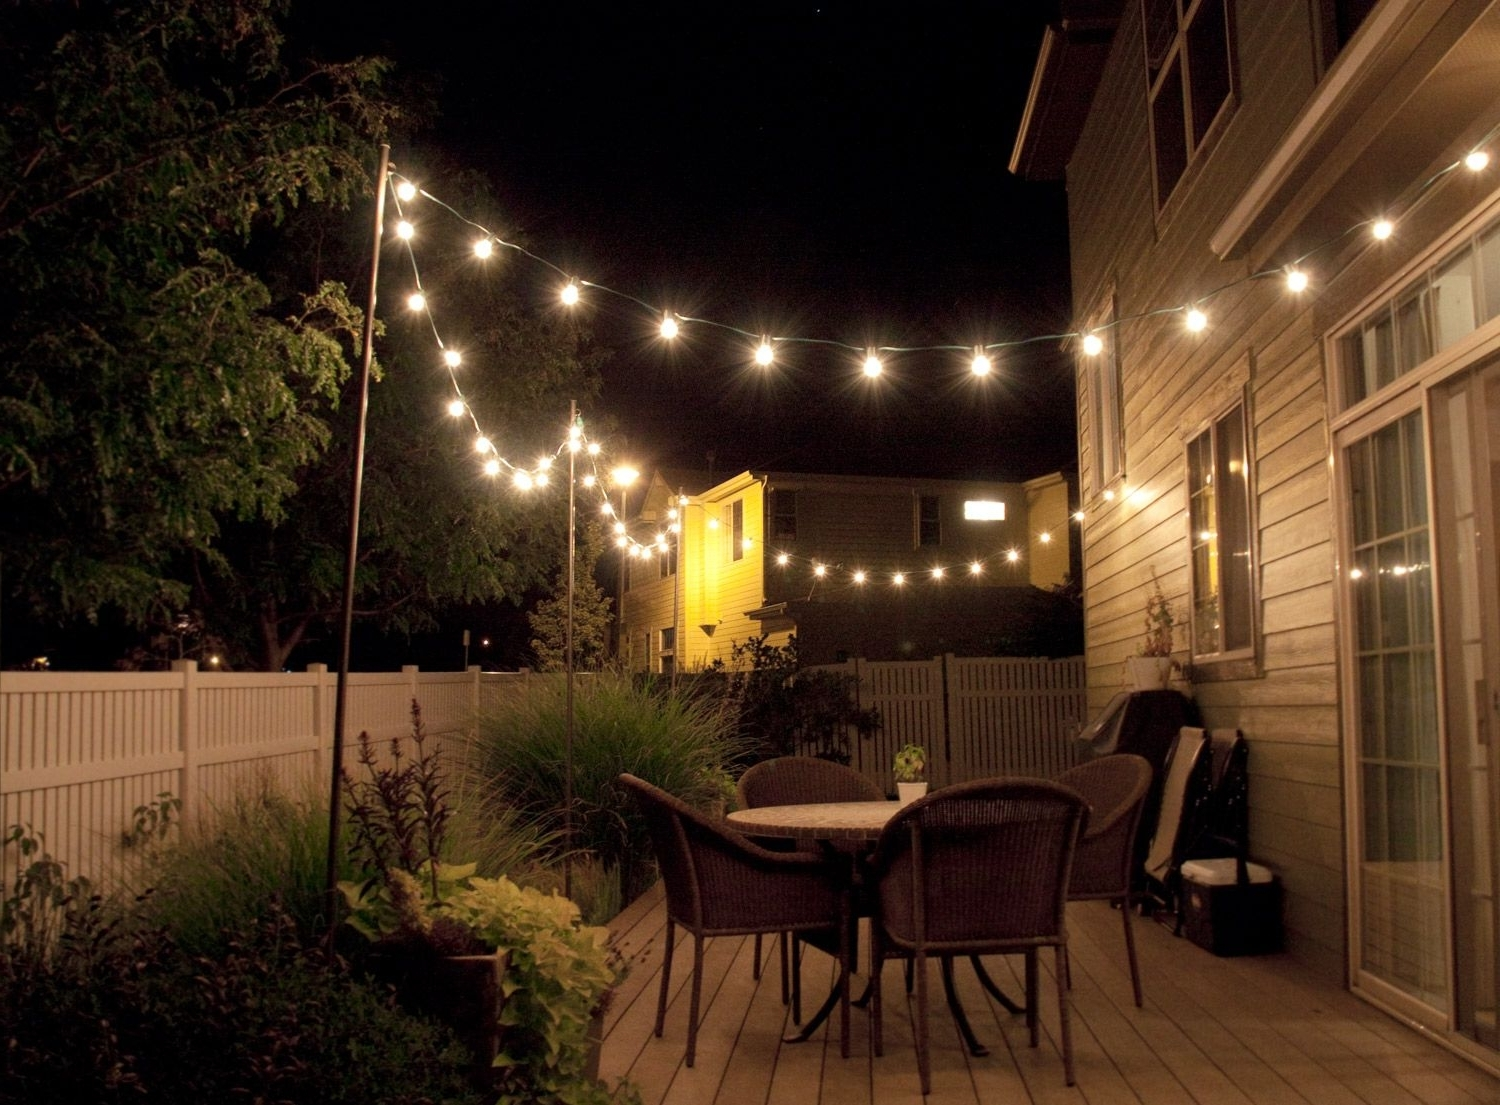 How To Make Inexpensive Poles To Hang String Lights On – Café Style Within Famous Outdoor Rope Lanterns (View 4 of 20)